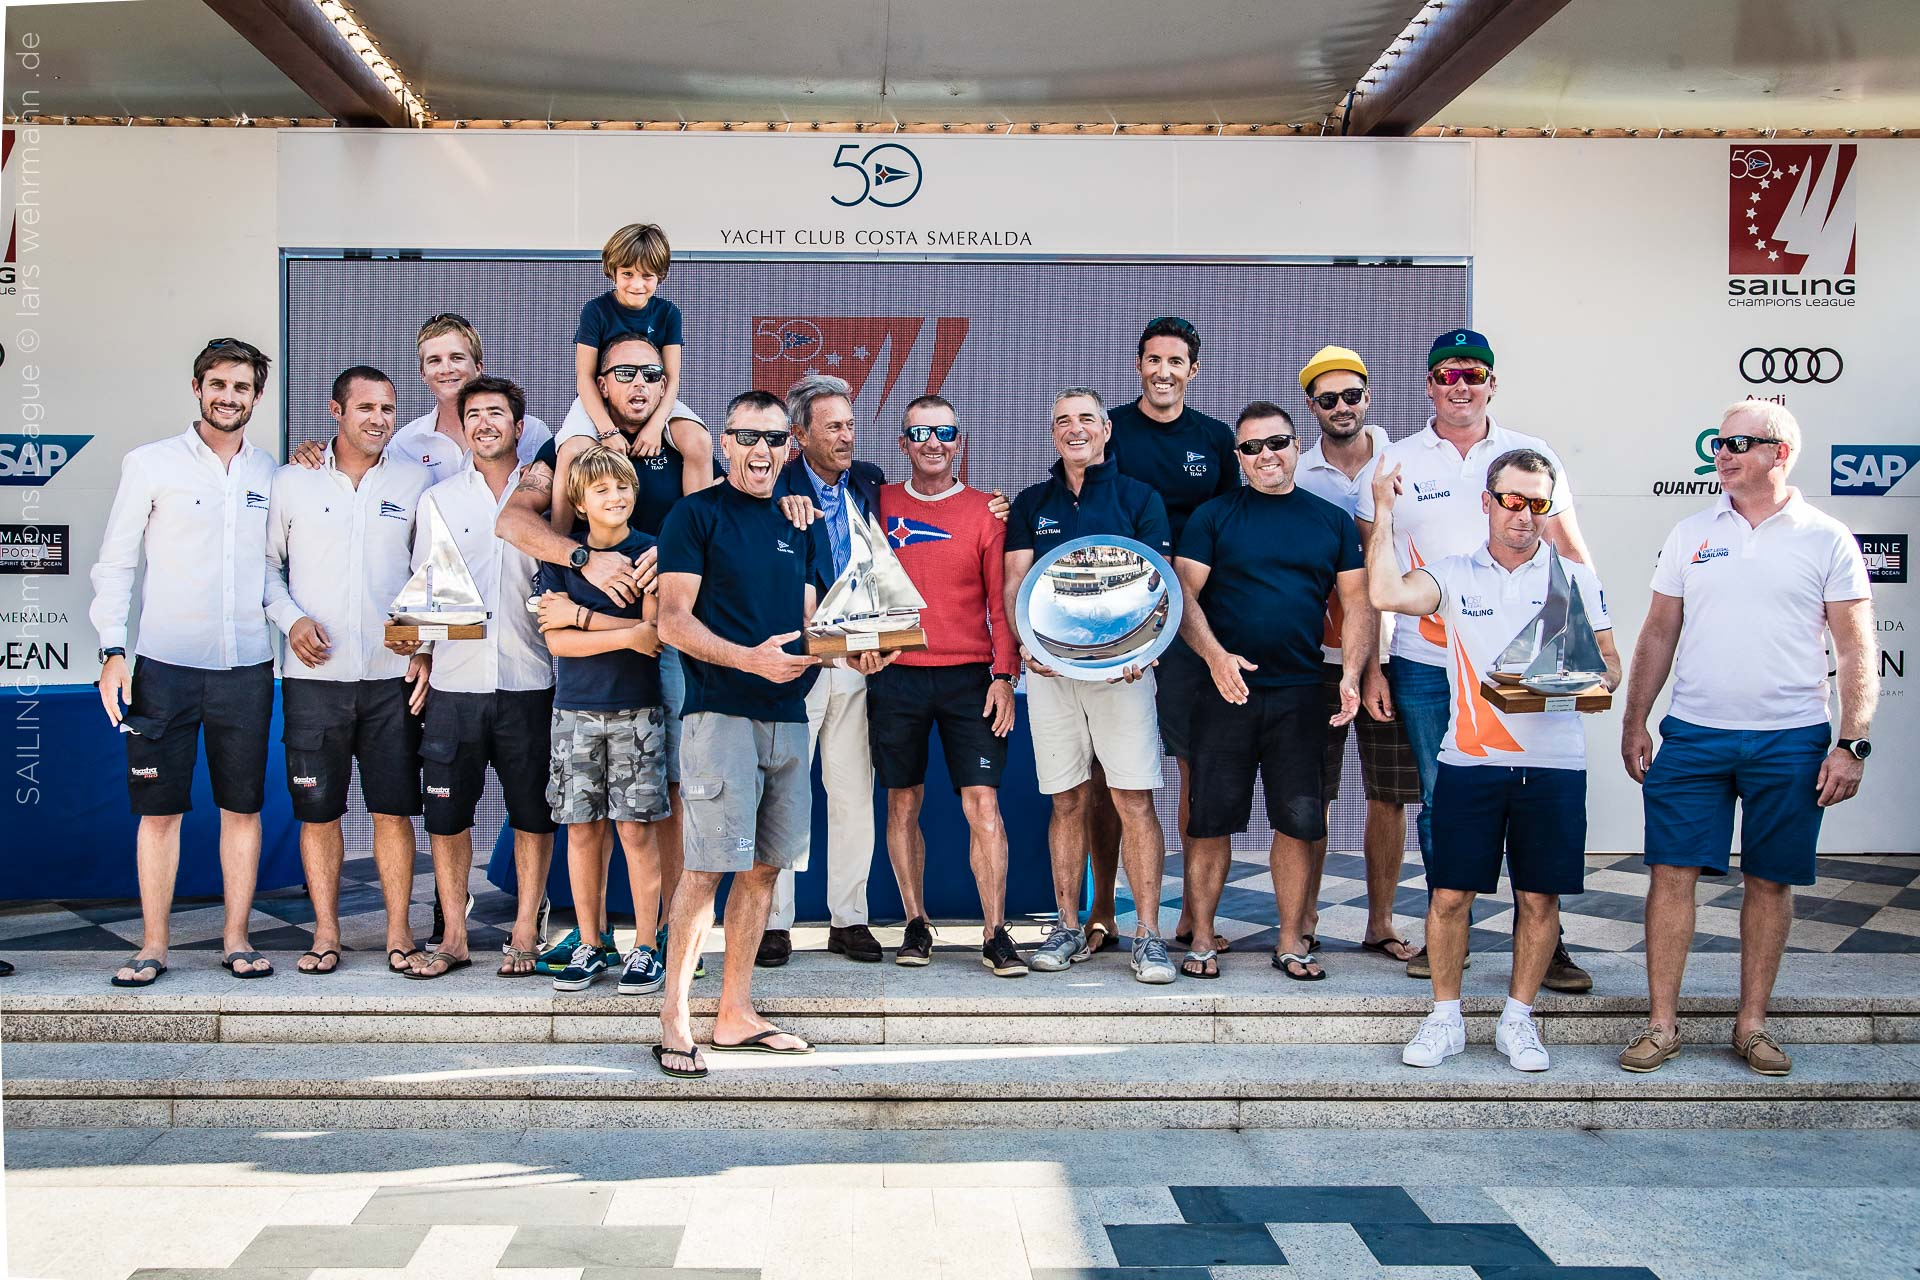 Audi Sailing Champions League Final - Images Final day online - NEWS - Yacht Club Costa Smeralda